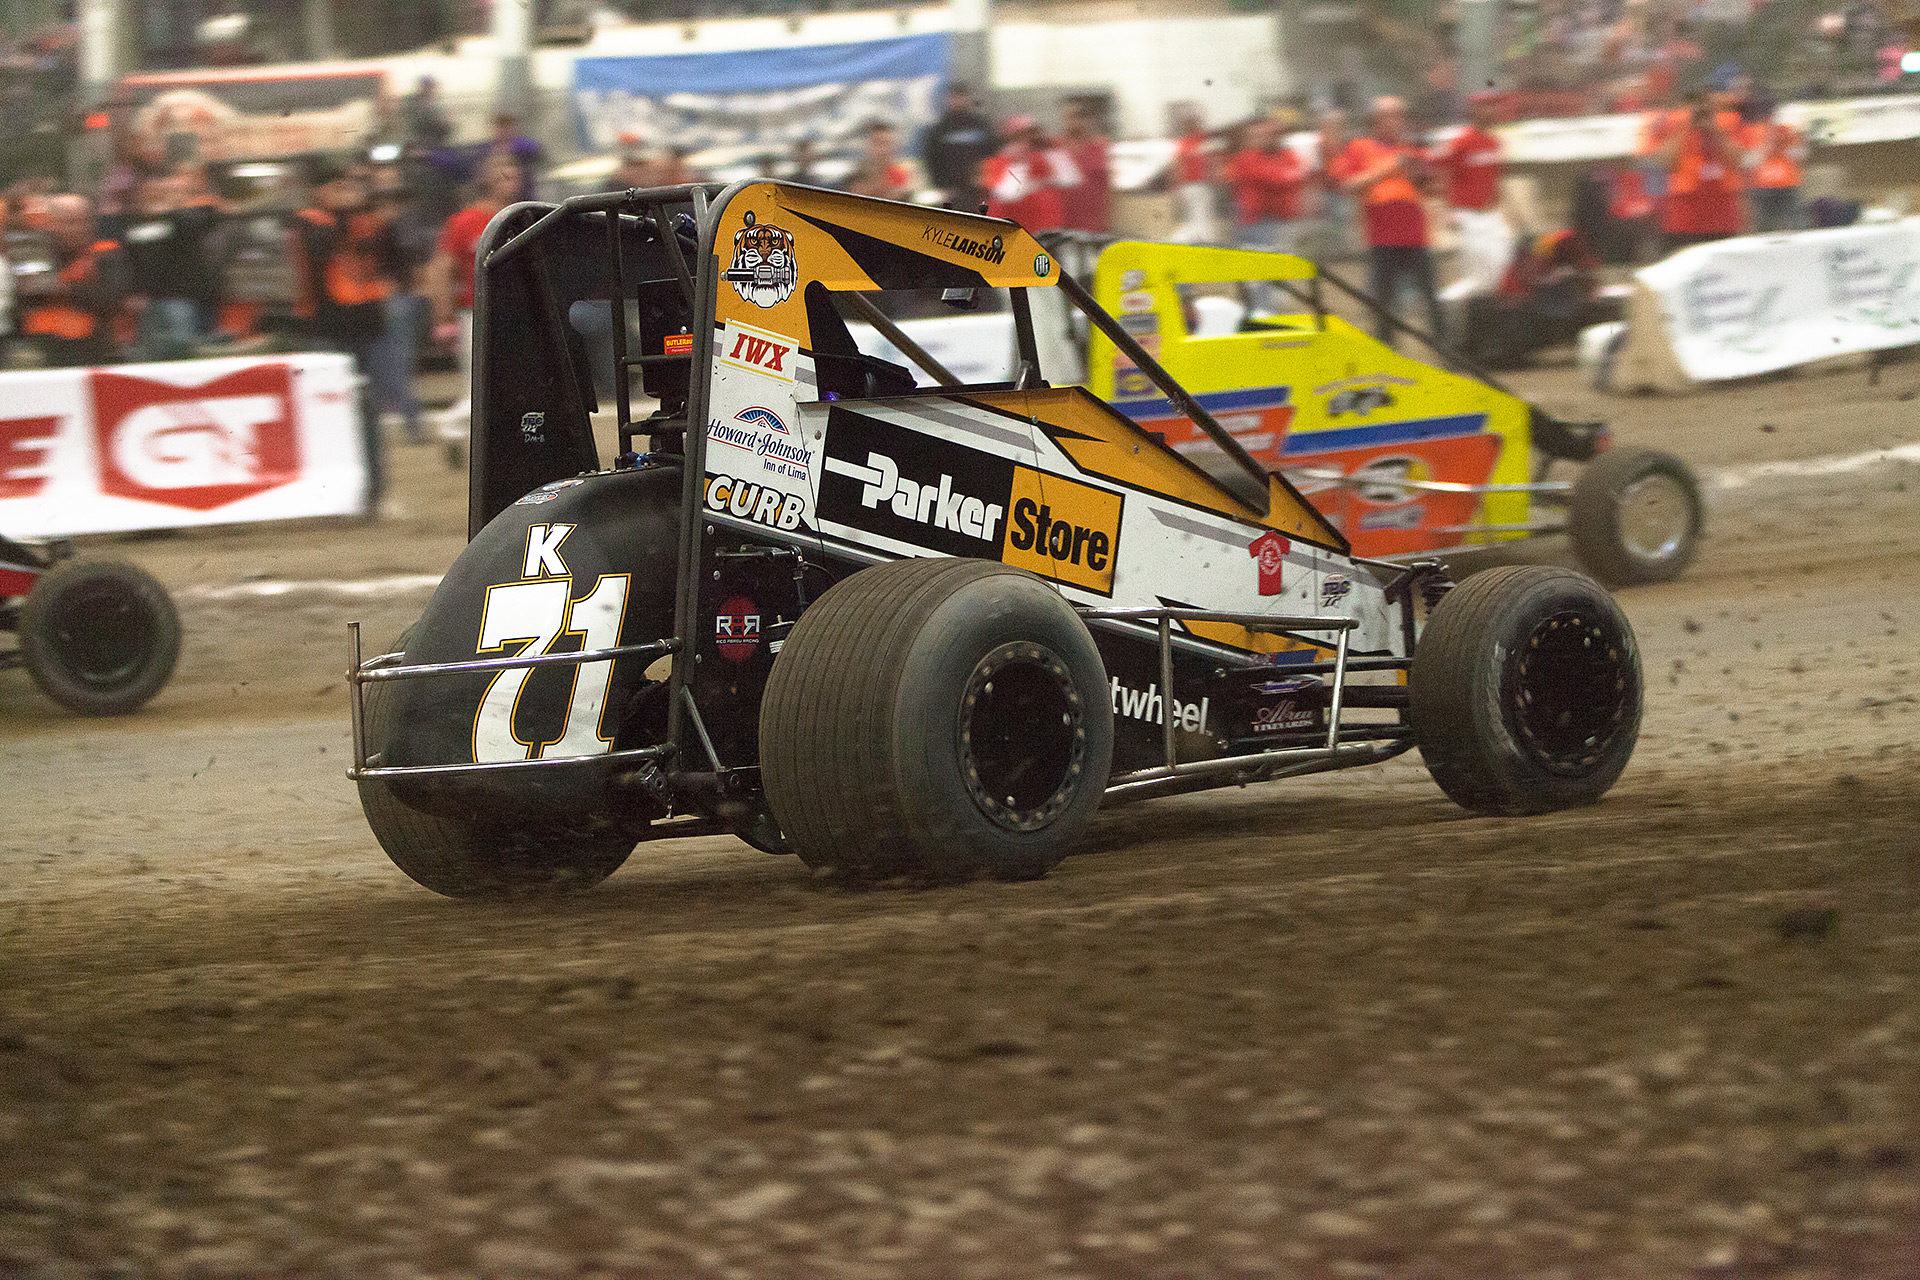 Saturday January 14, TULSA, Oklahoma - Kyle Larson battling hard into turn 1 of the D-Feature, on the final night of The 31st annual Lucas Oil Chili Bowl Nationals ( Jeffrey Turford / TDP )